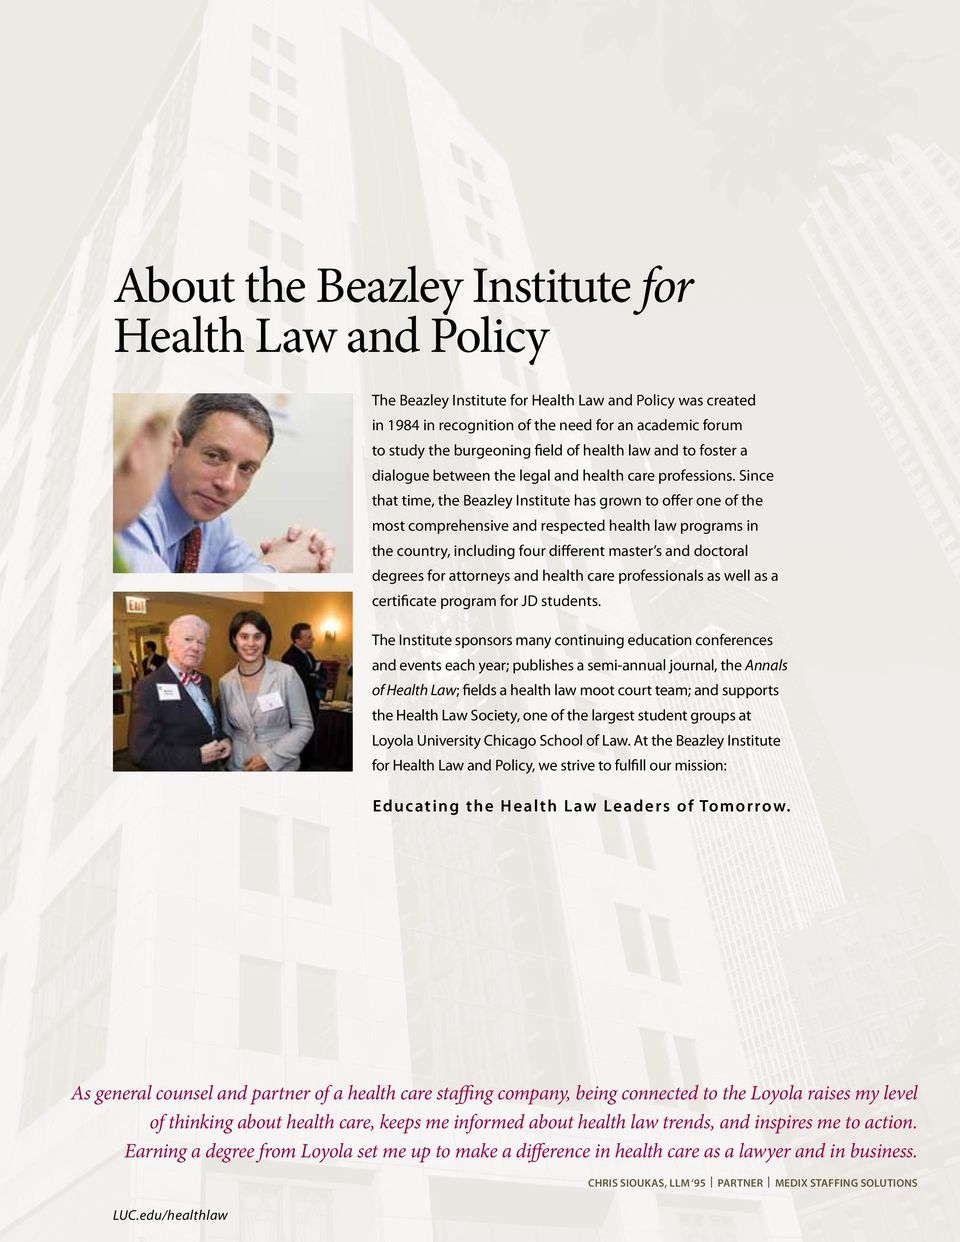 Since that time, the Beazley Institute has grown to offer one of the most comprehensive and respected health law programs in the country, including four different master s and doctoral degrees for